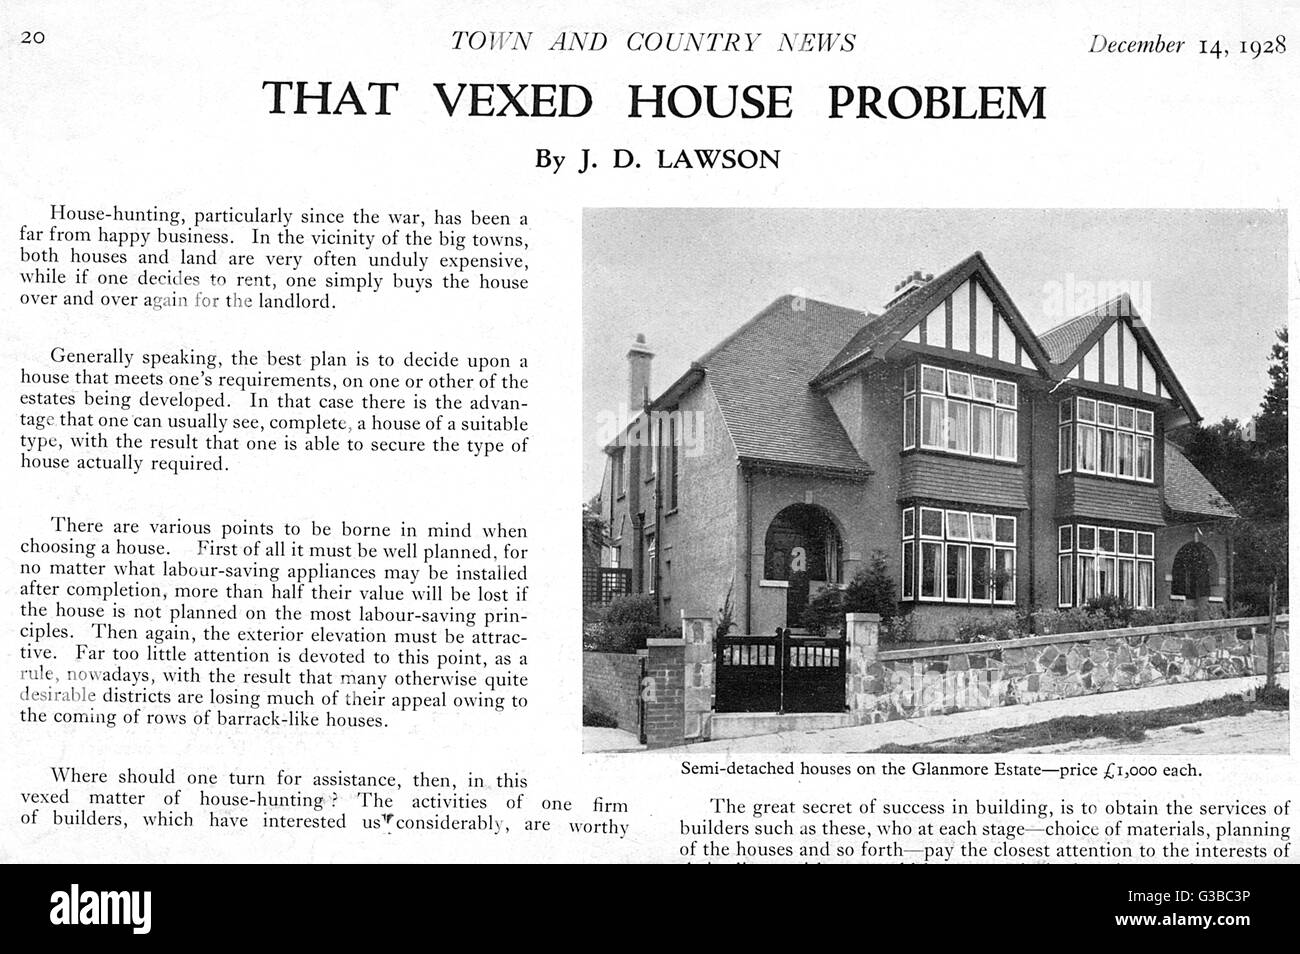 Classic British semi-detached  houses         Date: 1928 - Stock Image